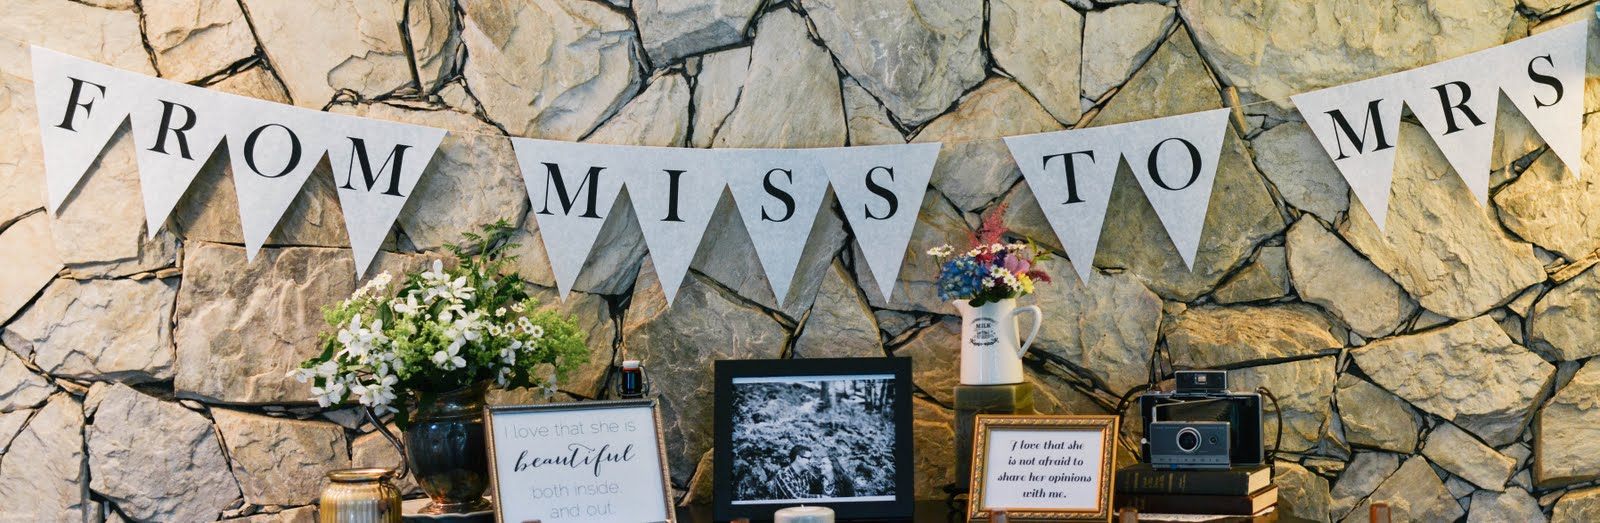 Ps bridal showerwedding decoration ideas bridal showerwedding decoration ideas altavistaventures Gallery